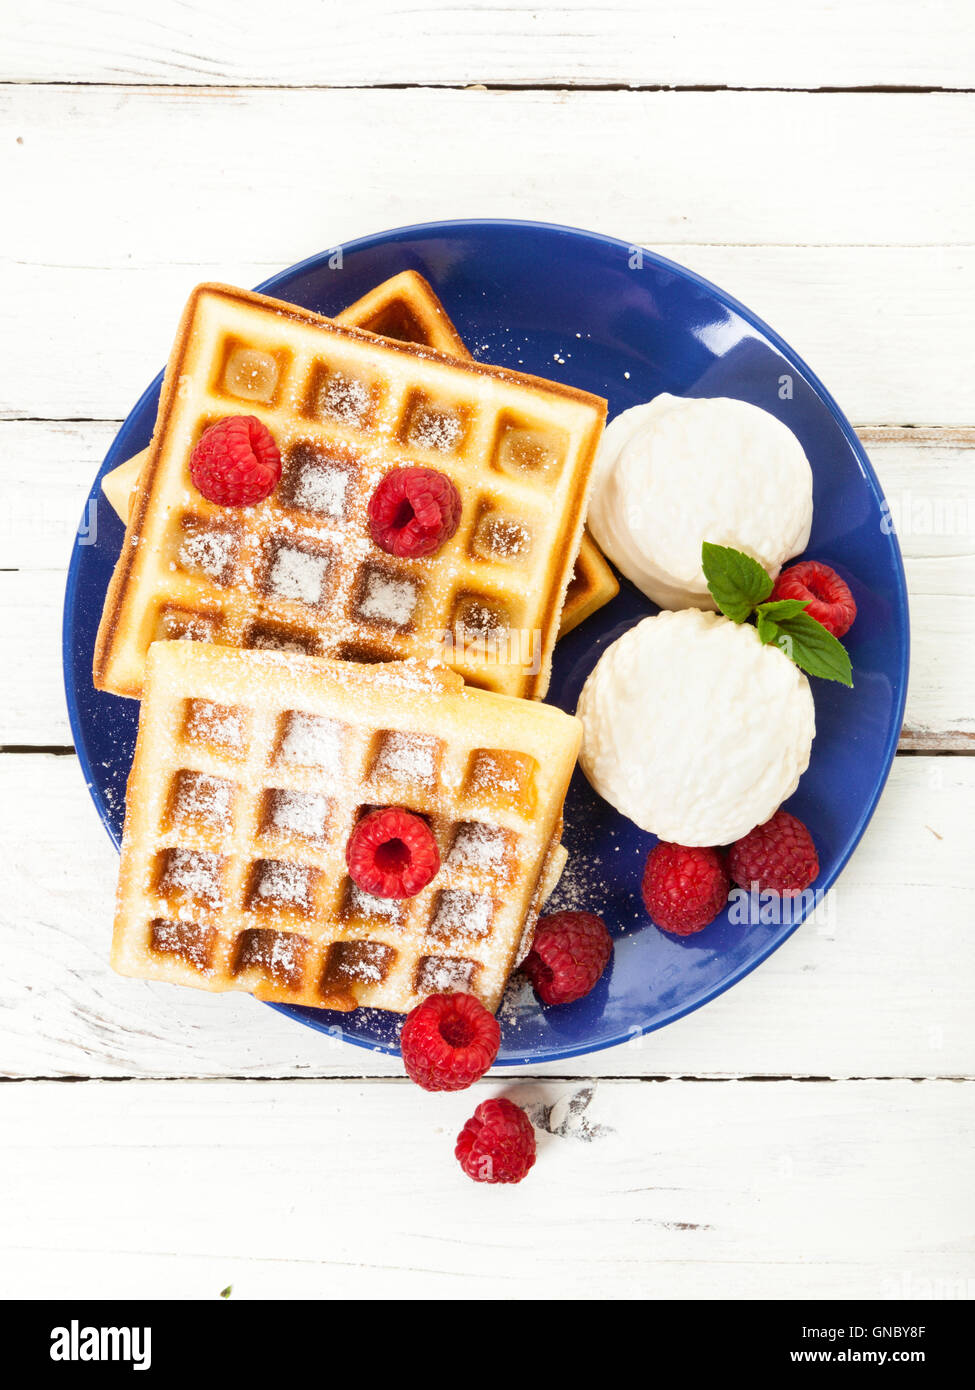 Belgian waffles with raspberries, vanilla ice cream scoops and powdered sugar on blue plate, on rustic wooden table, - Stock Image